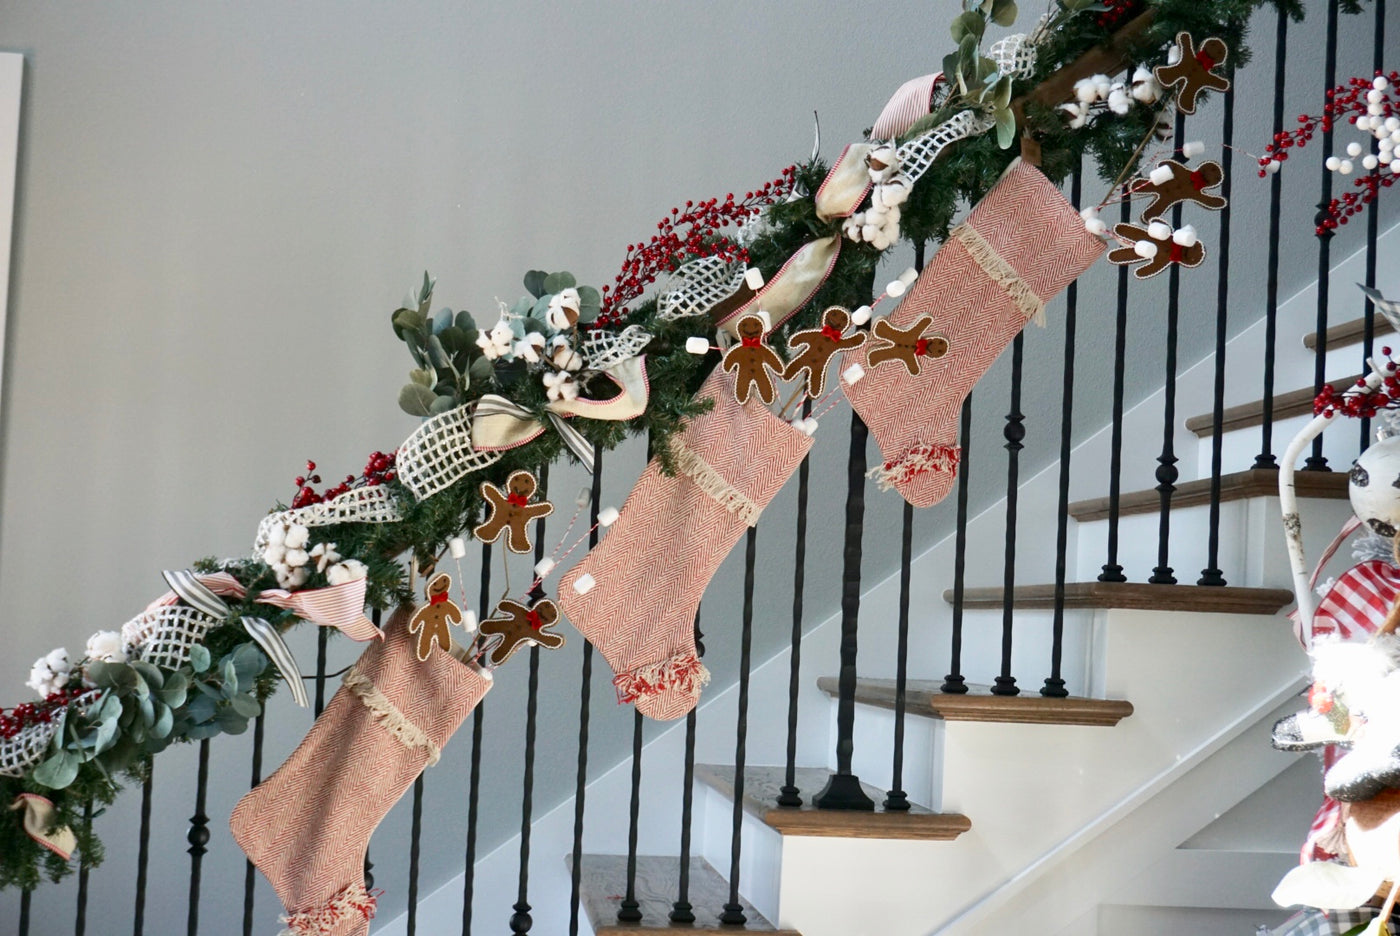 Red Cotton Woven Stocking